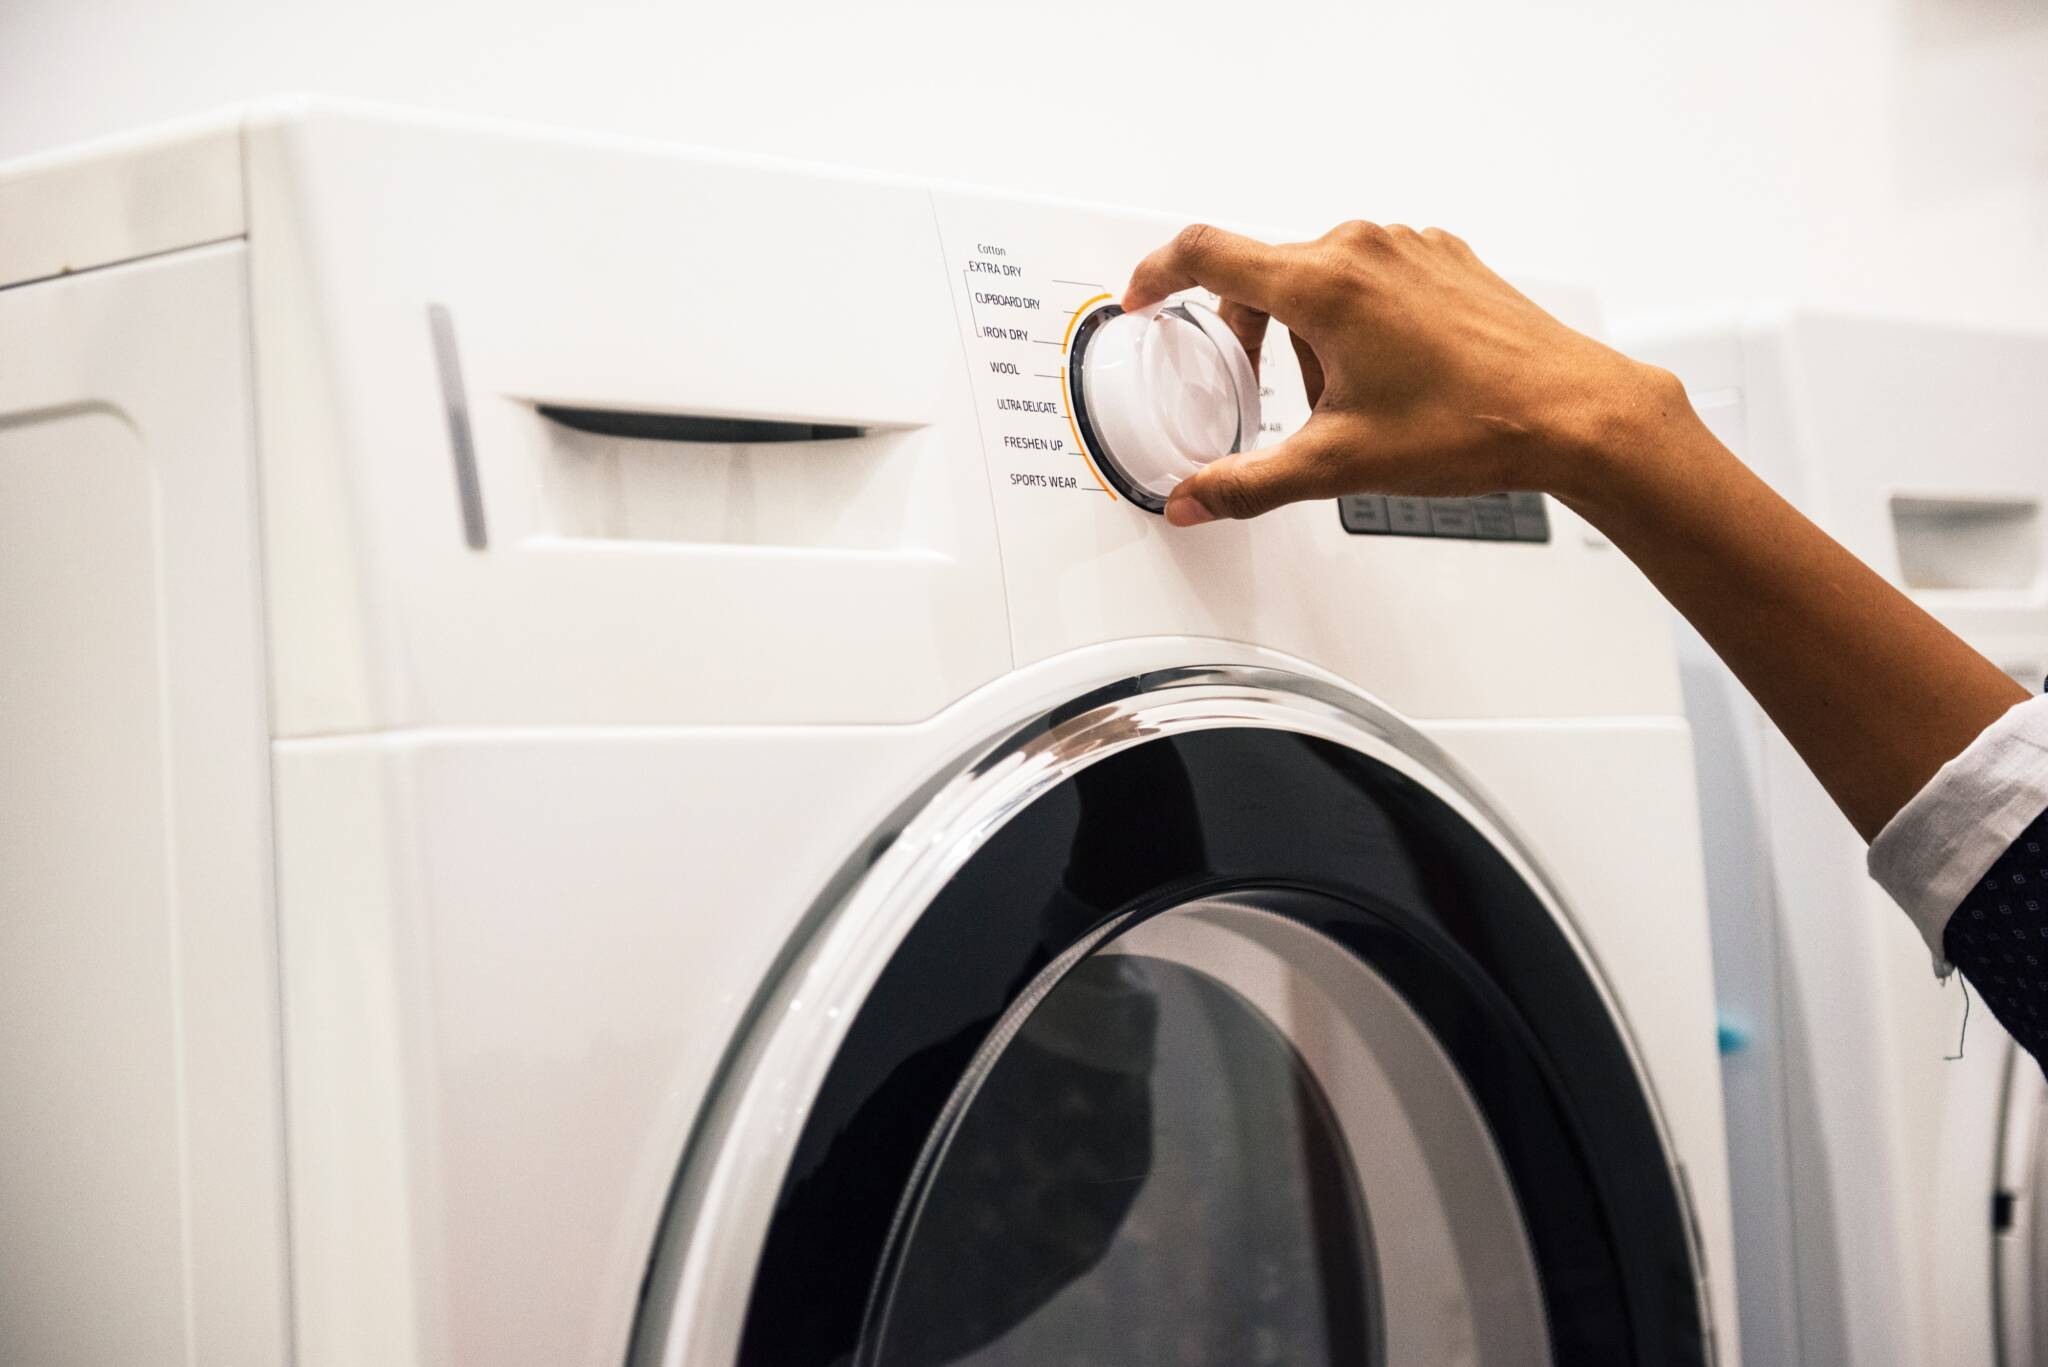 Choosing a Cycle Selection for Washing Clothes